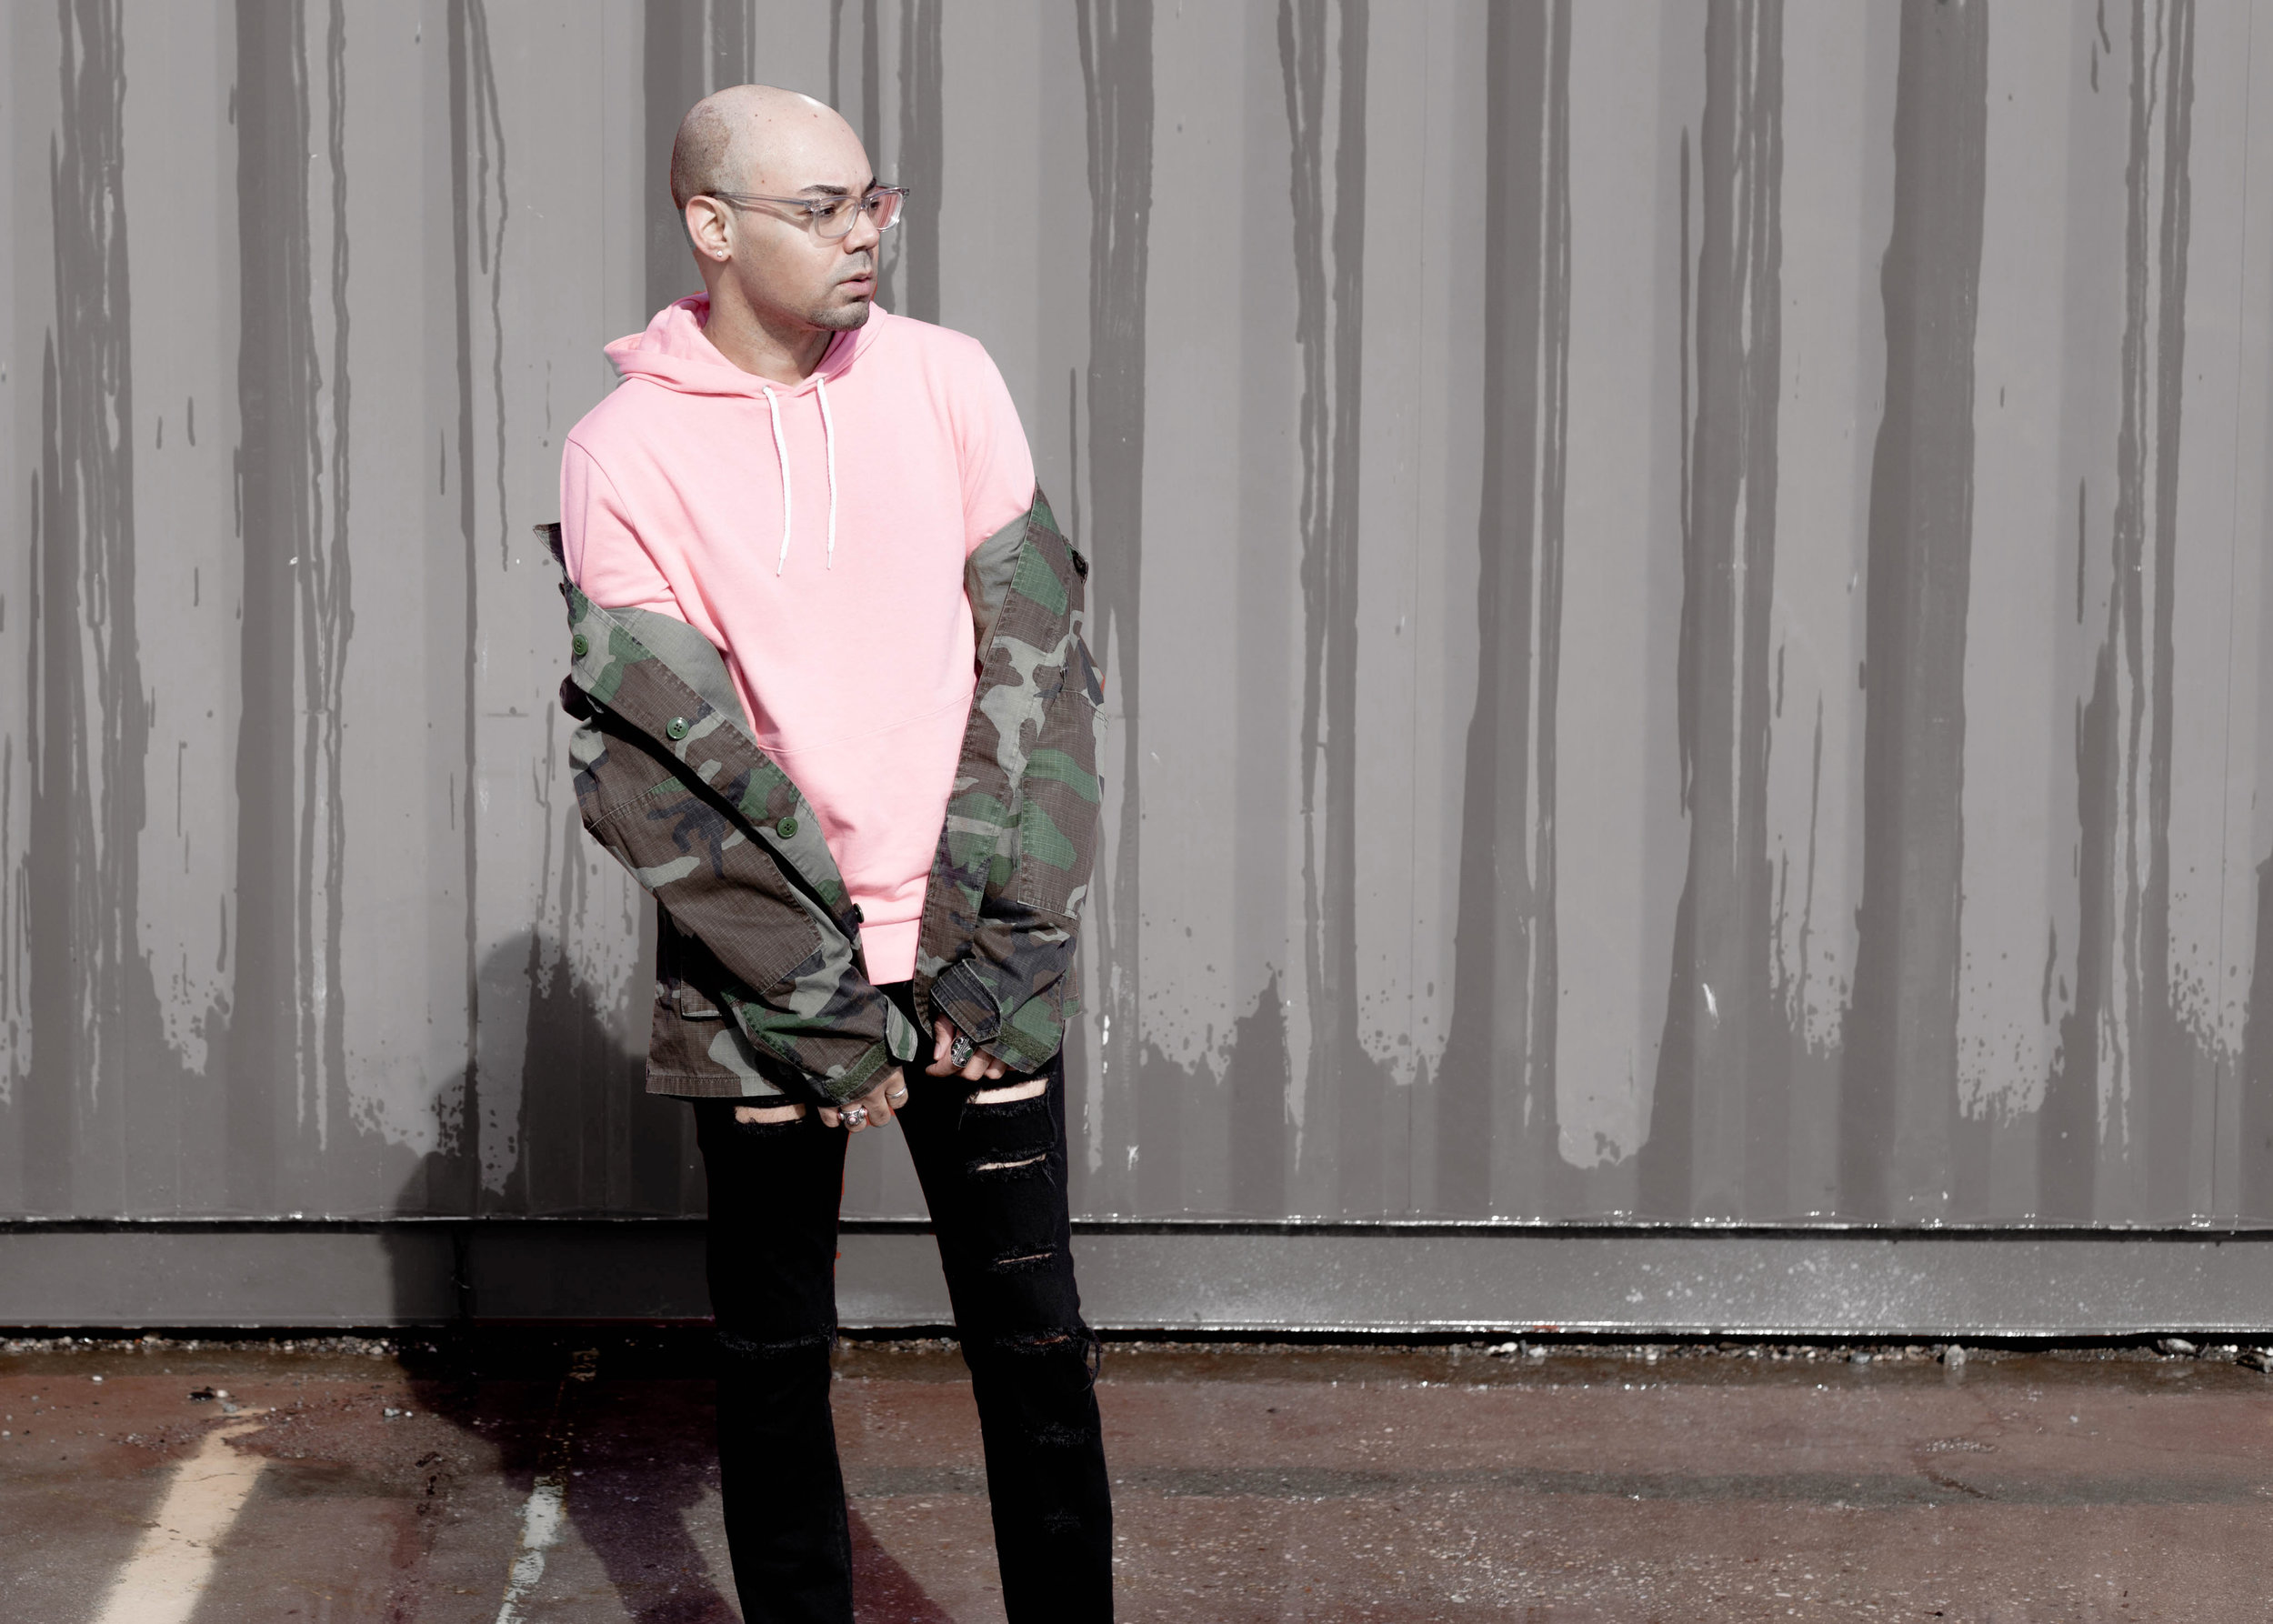 sam-c-perry-camo-jacket-pink-hoodie-jacket-down.jpg